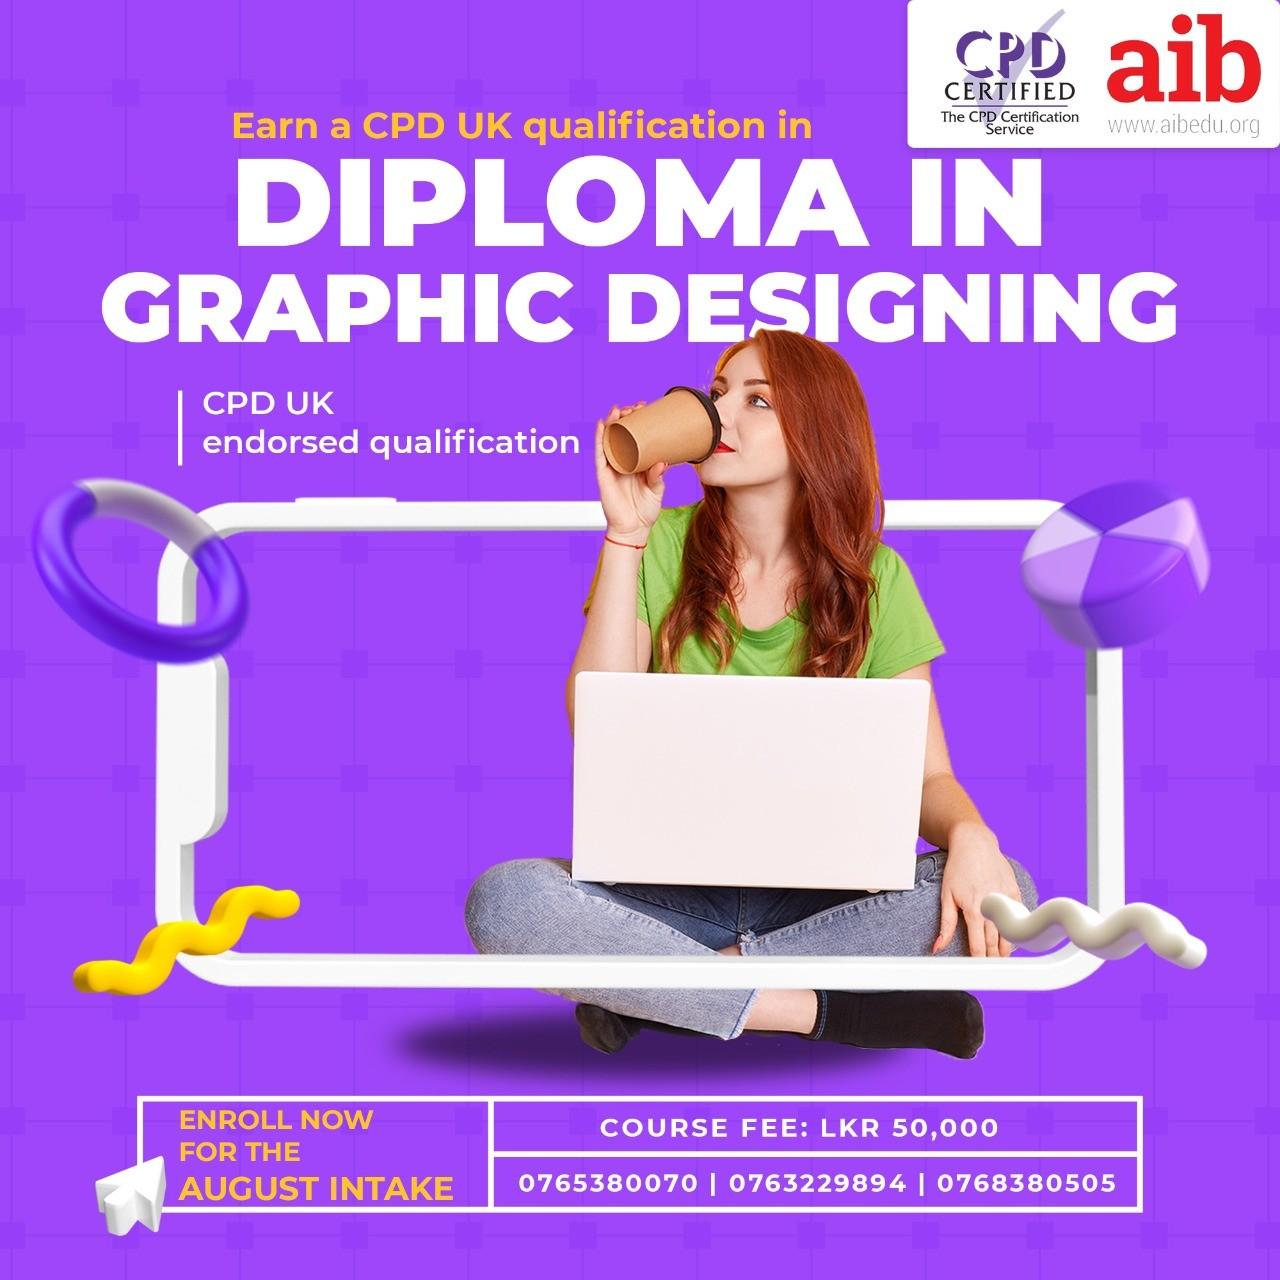 Diploma in Graphic Designing - August Intake